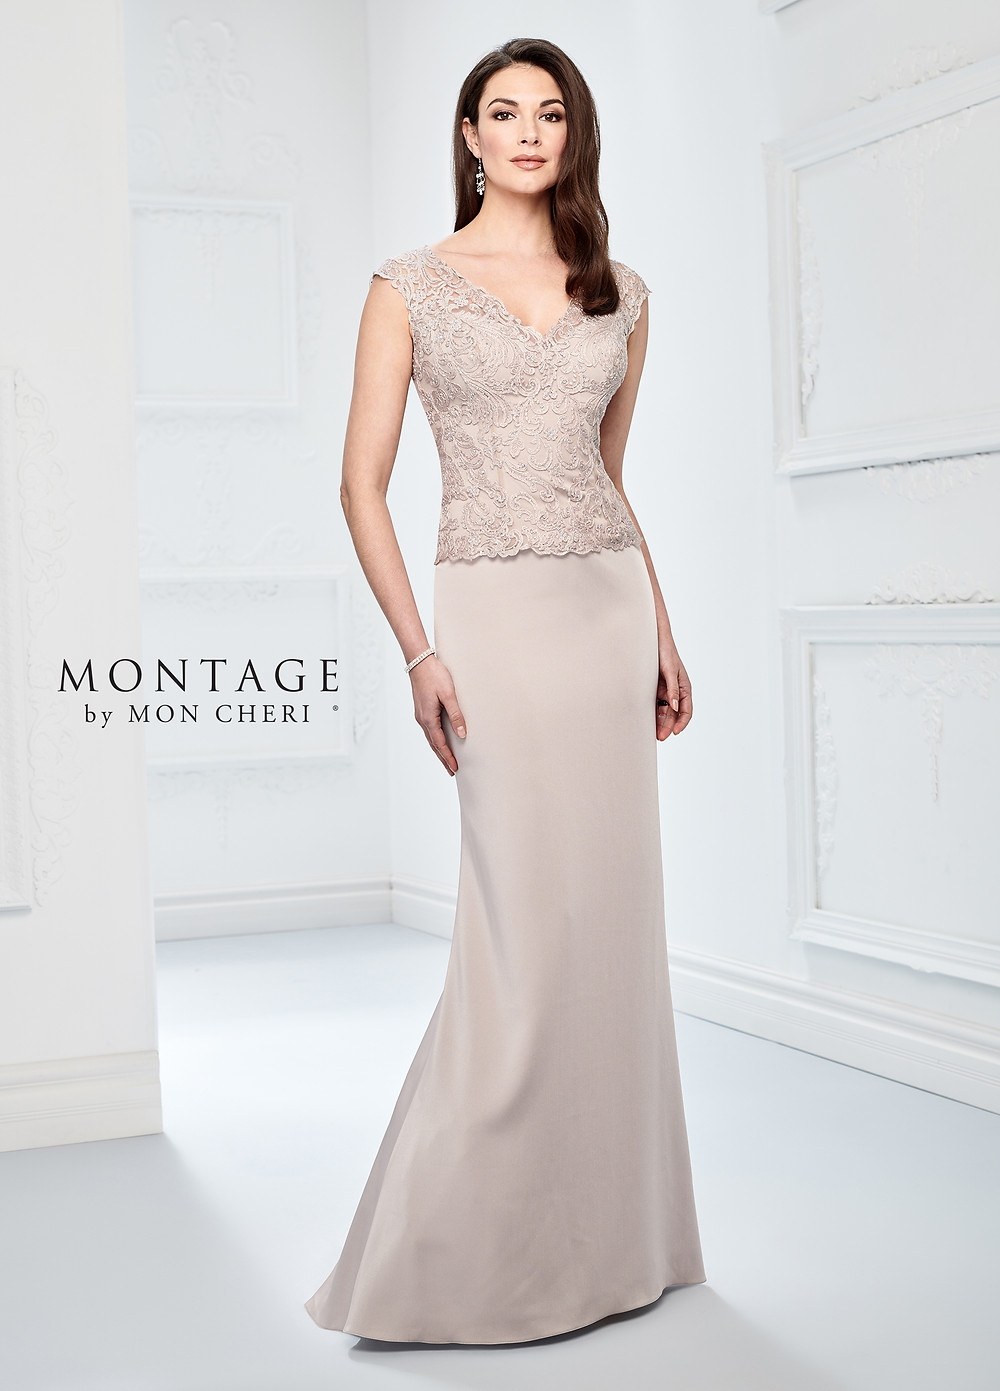 lace and chiffon mother of the bride dress champagne nude